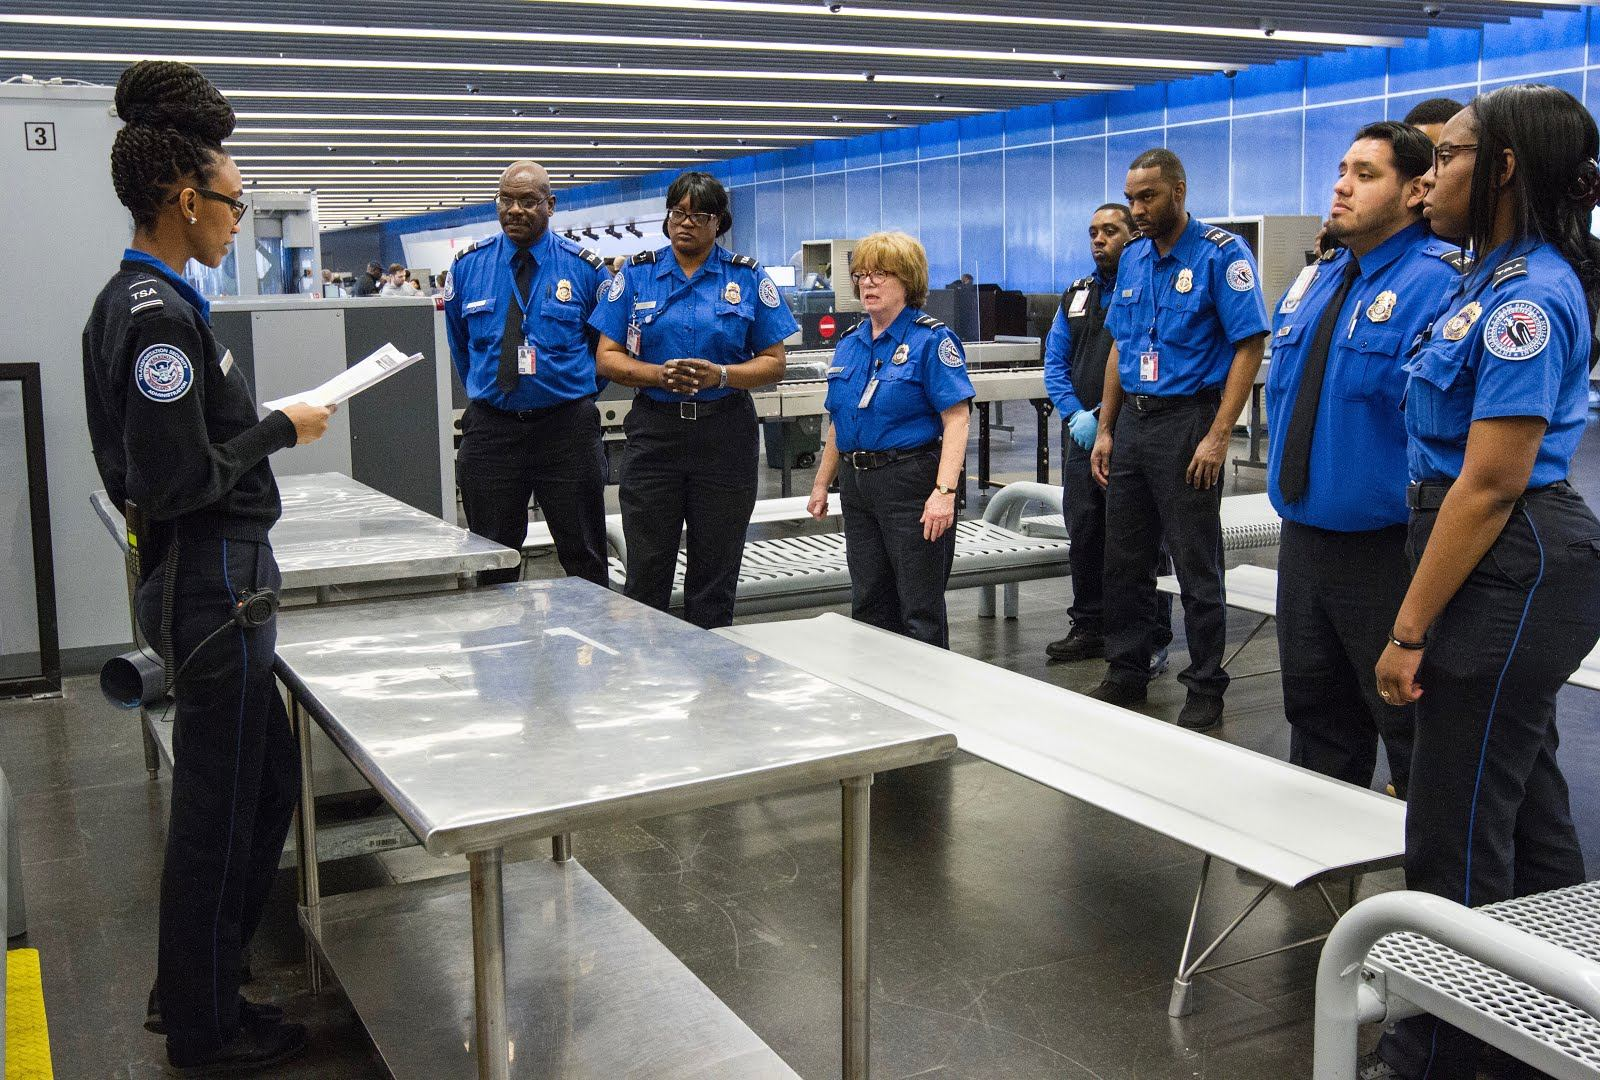 training at jfk - Transportation Security Officer